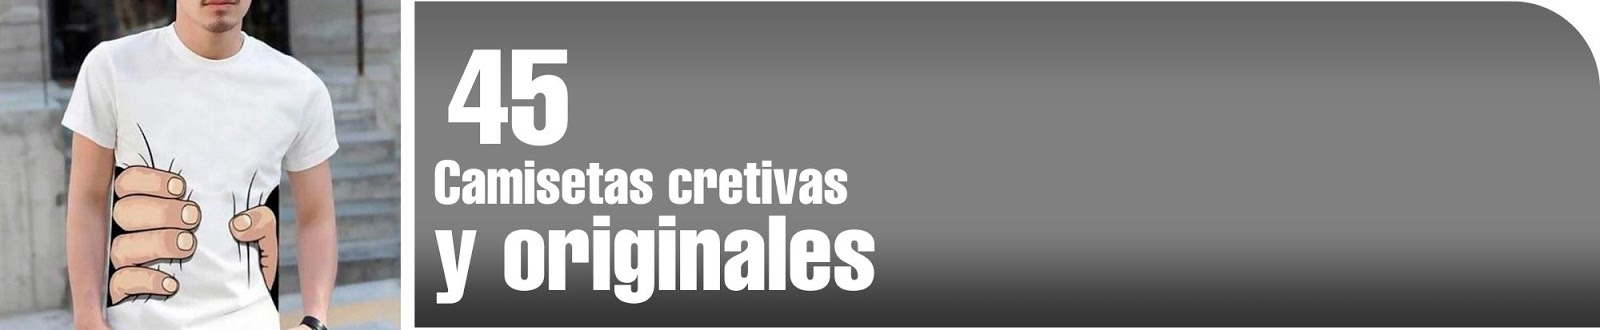 Camisetas creativas y orginales